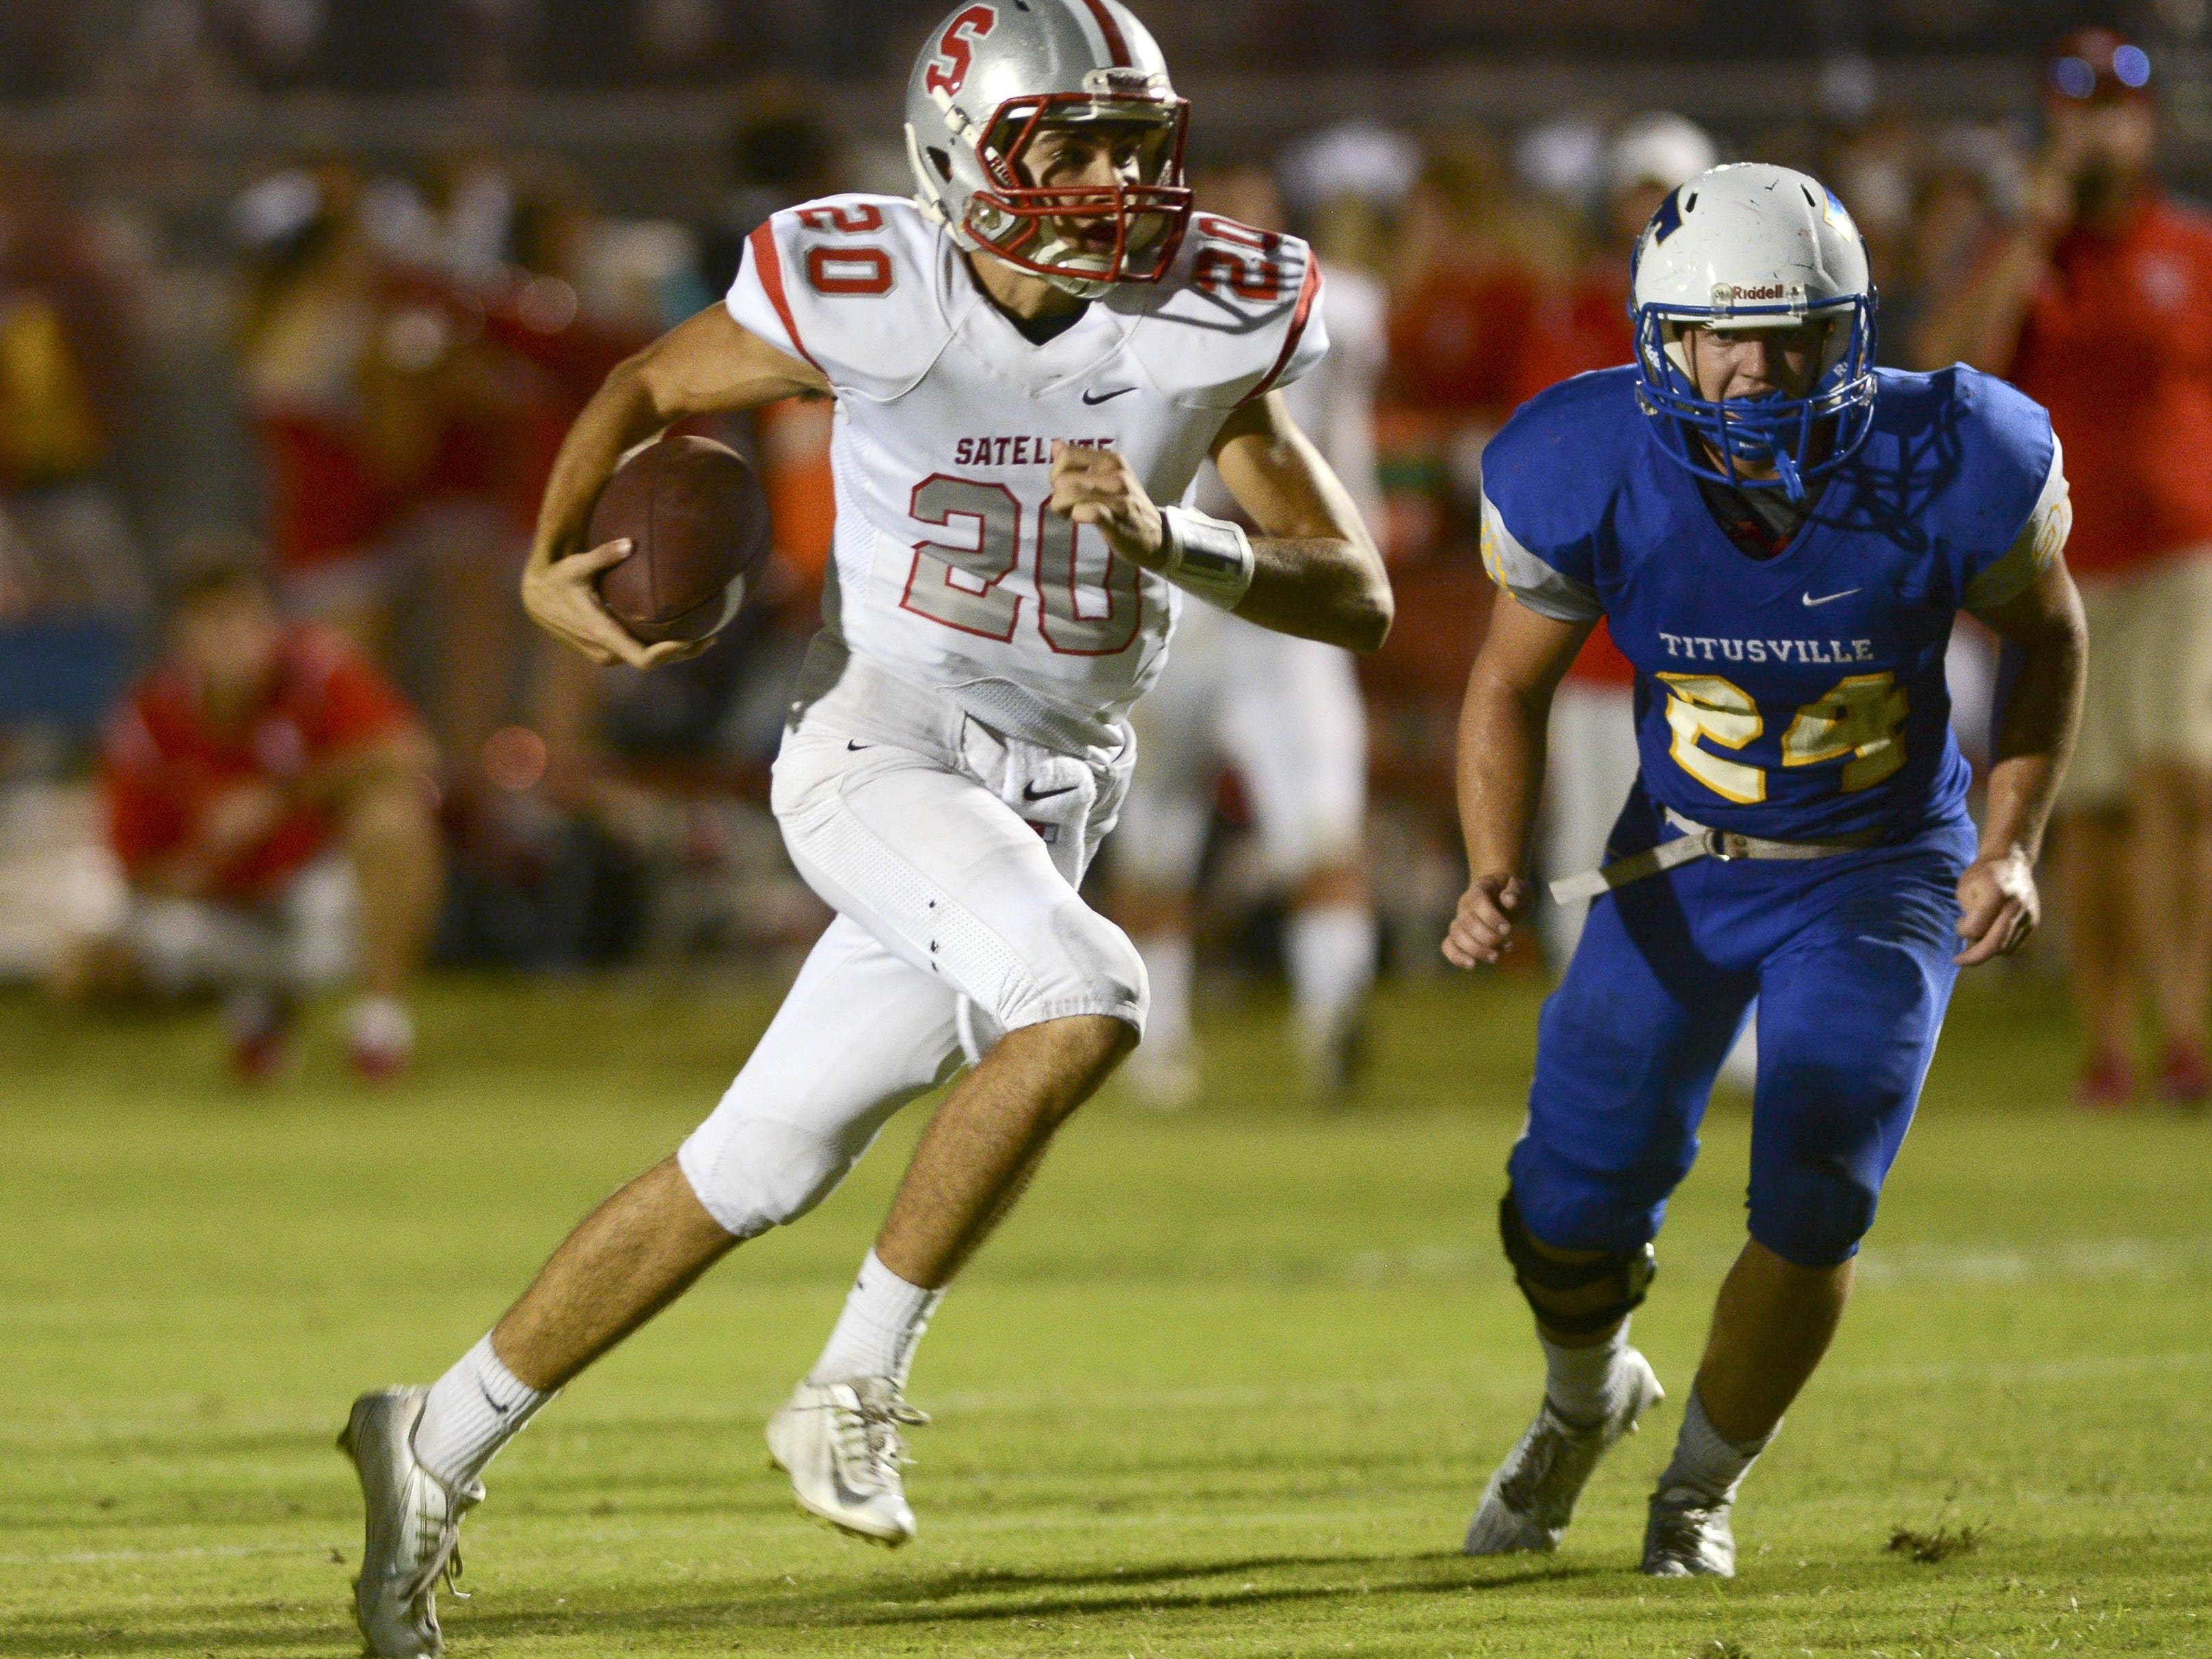 Satellite QB Seth Kennedy (20) is pursued by Titusville's Jacob Farris as he gets into the open field during Friday's game.